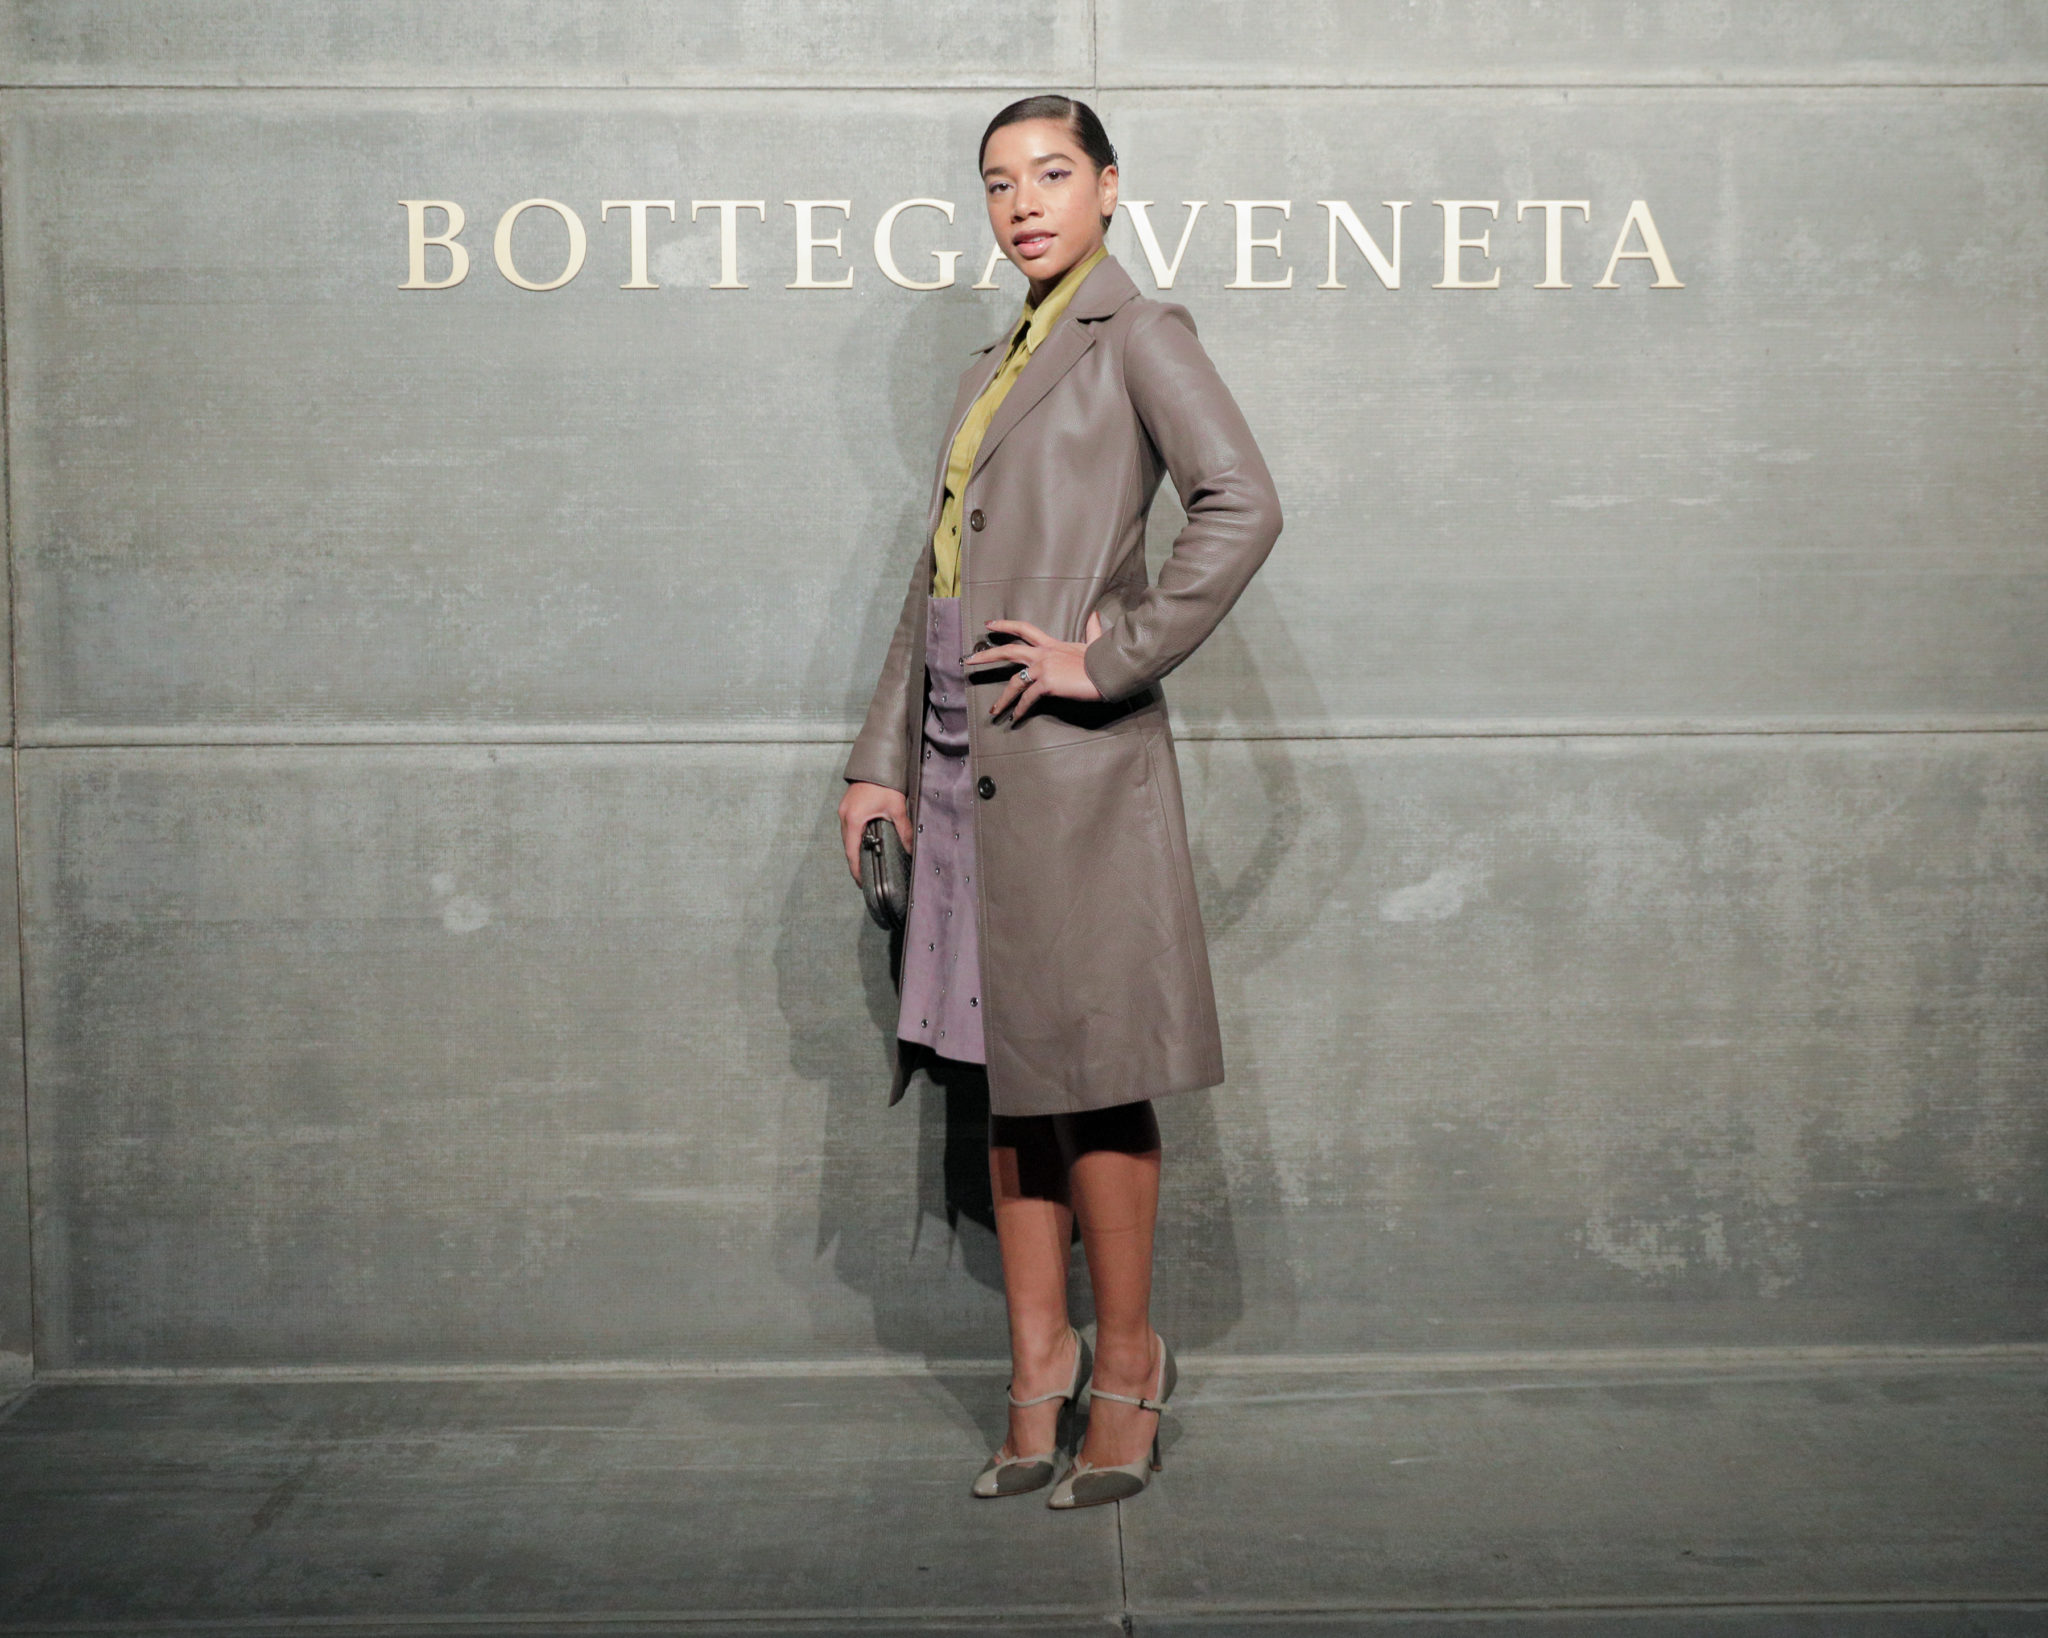 Hannah Bronfman, At the Bottega Veneta Fall Winter 2018 show at the American Stock Exchange in New York City